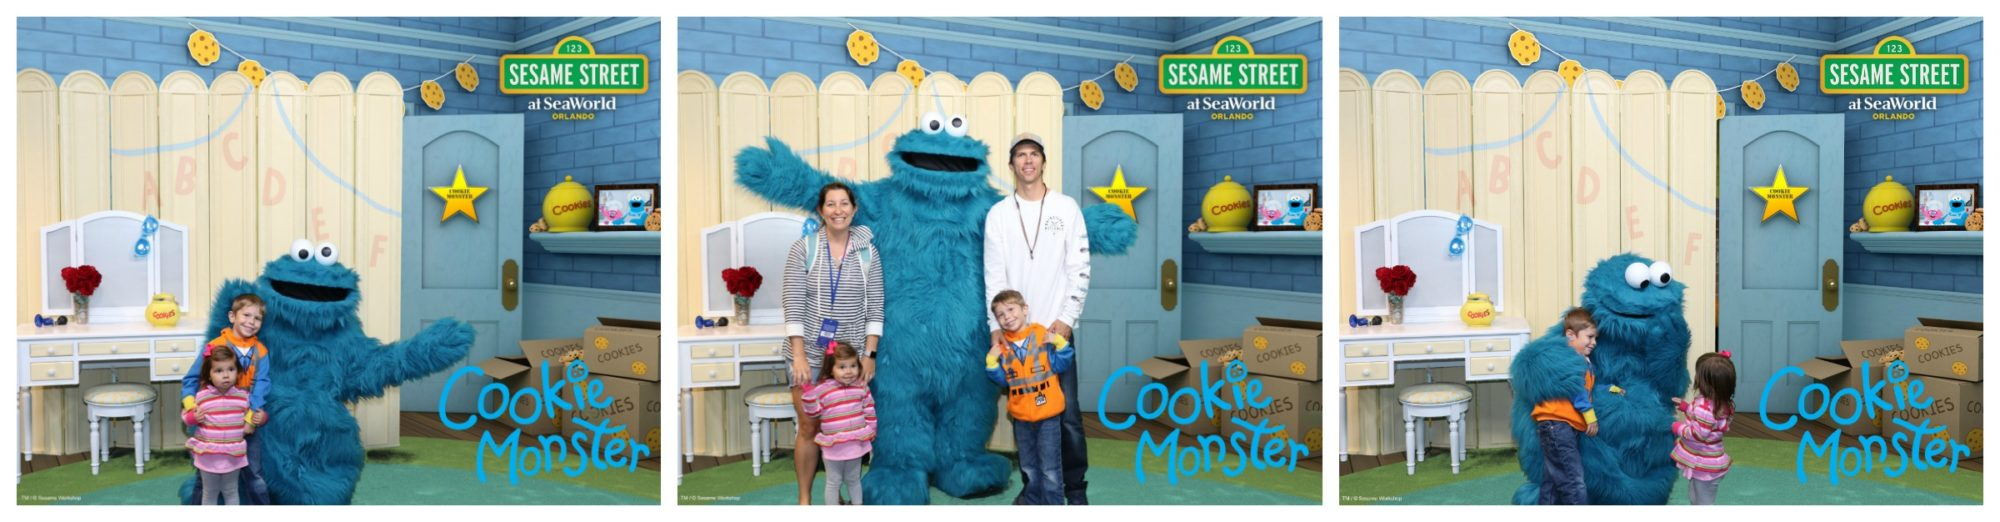 SESAME STREET AT SEAWORLD ORLANDO - Cookie Monster Photos